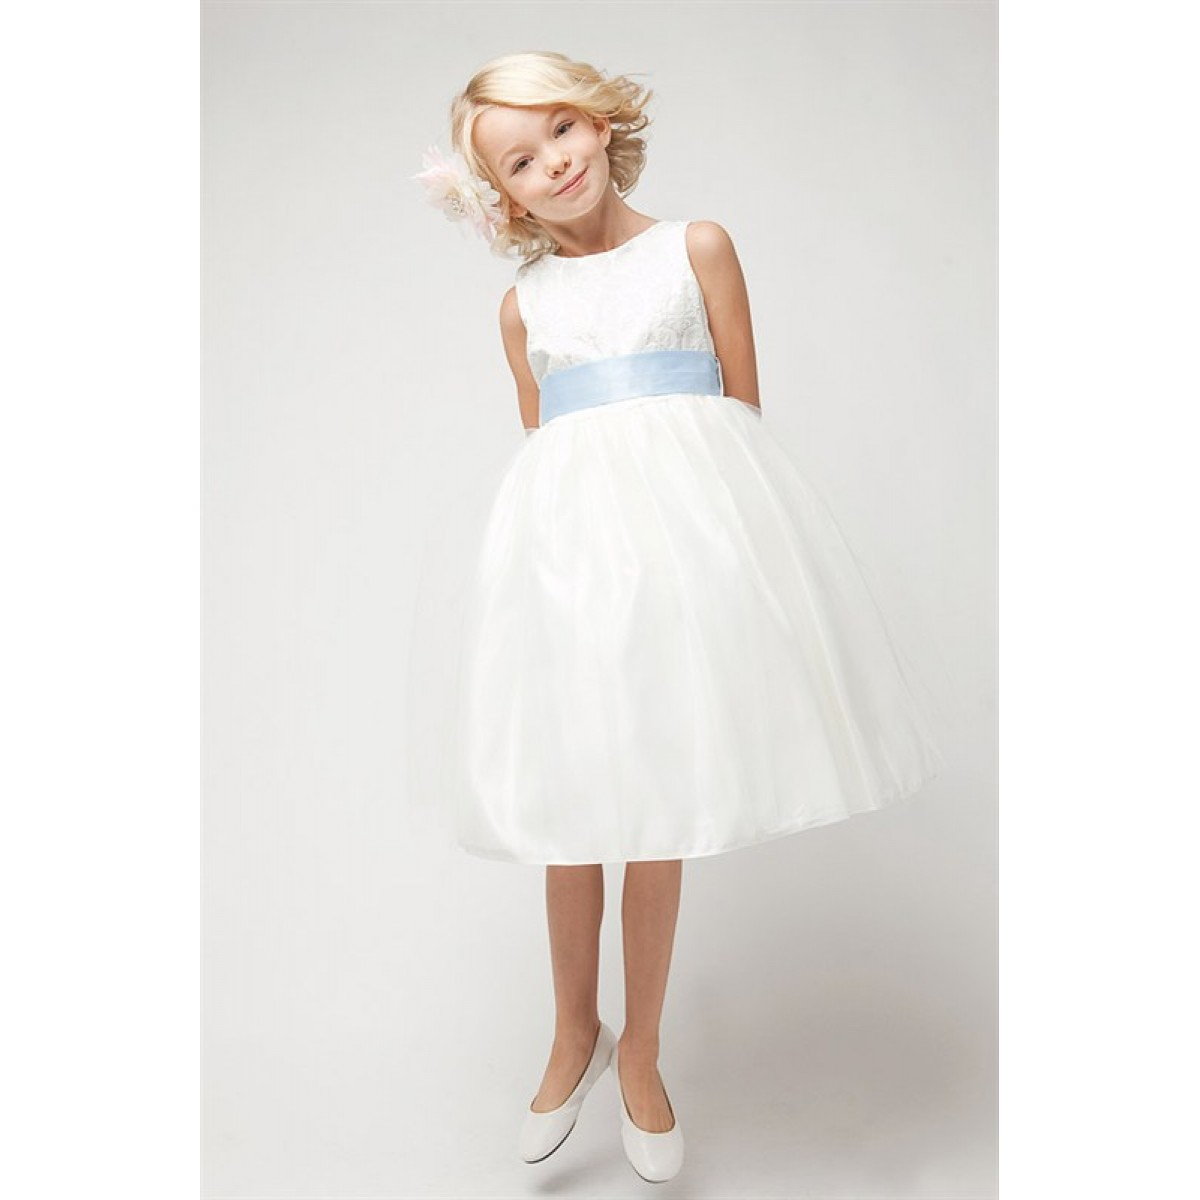 01a3bcc93 Ivory Jacquard Bodice w/ Tulle Skirt & Removable Sash